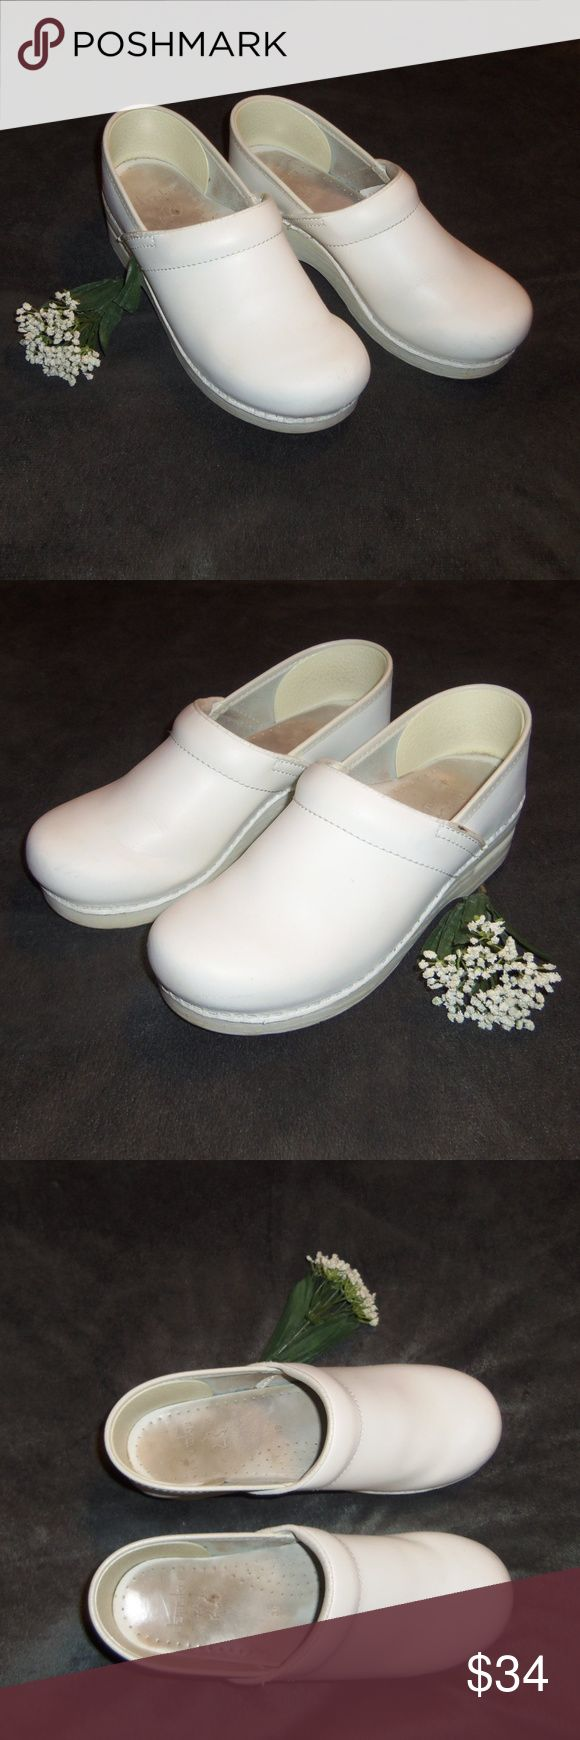 Dansko nursing medical clogs 39 Very nice pair of white Dansko closed back occupational clogs size EUR 39, equivalent to US size 8.5. Hardly worn at all!  Very minor scuffing. MSRP $125+ Dansko Shoes Mules & Clogs